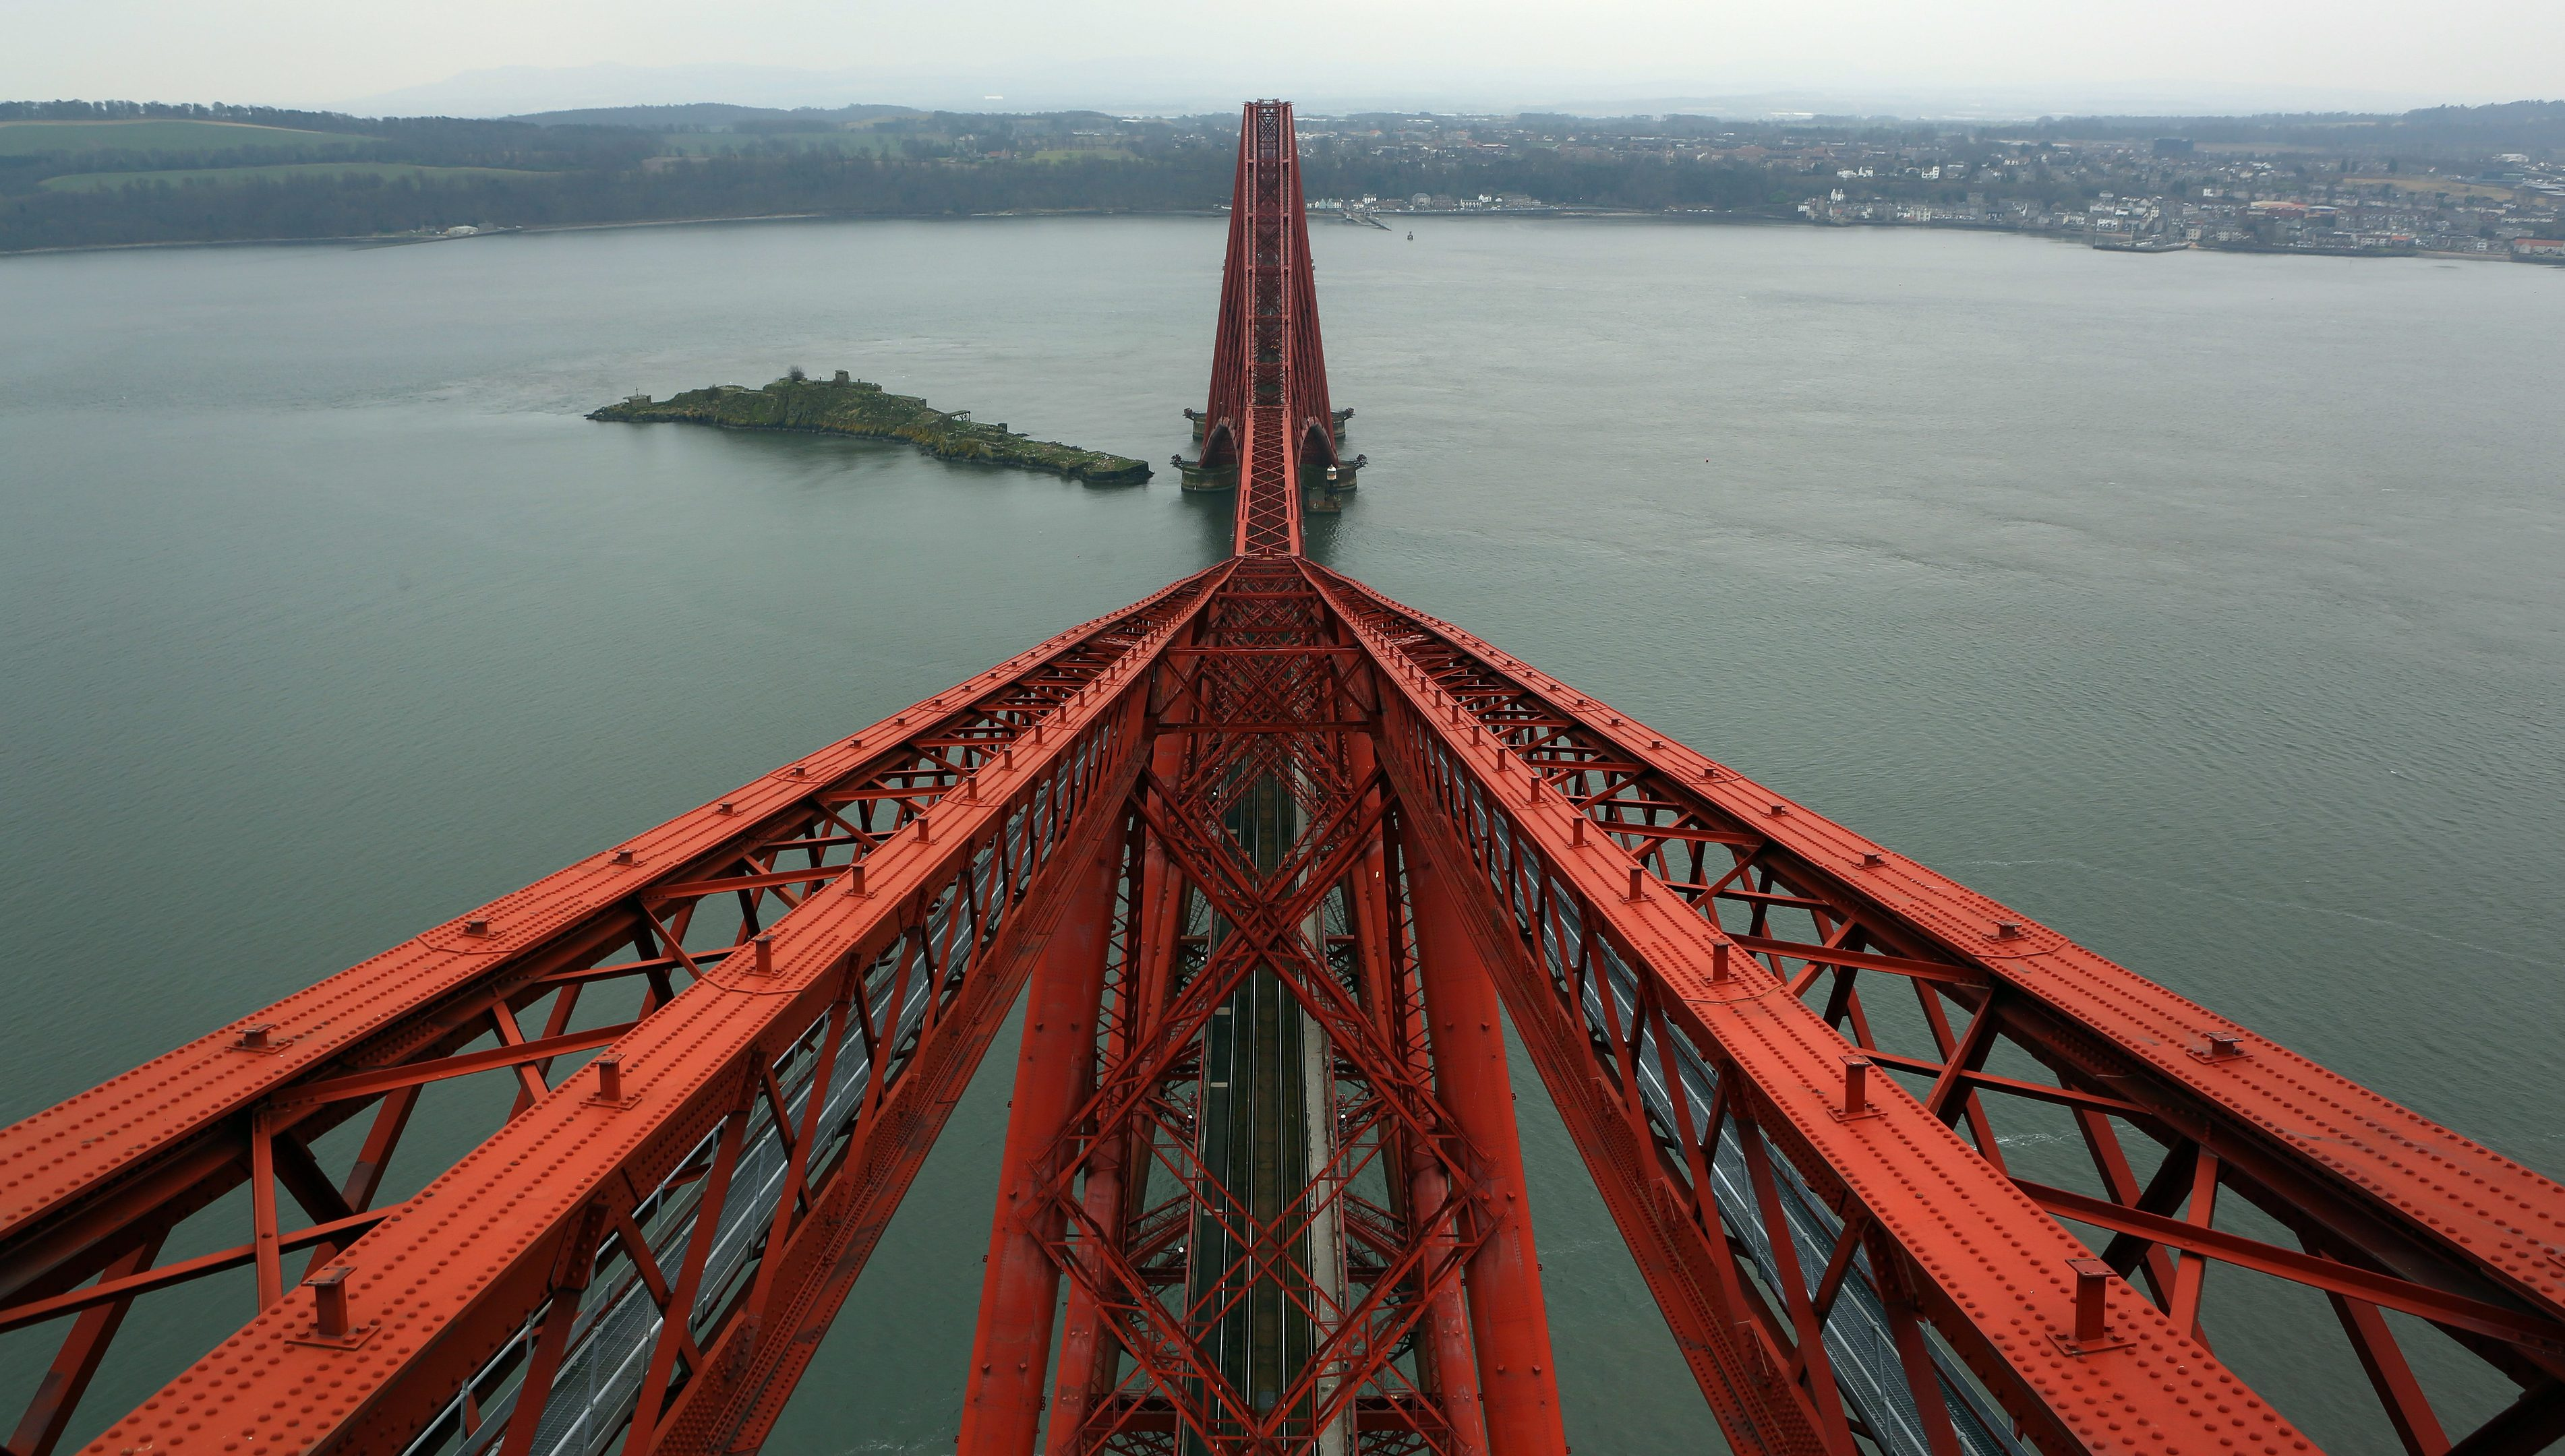 View from the North Tower of the Forth Bridge.